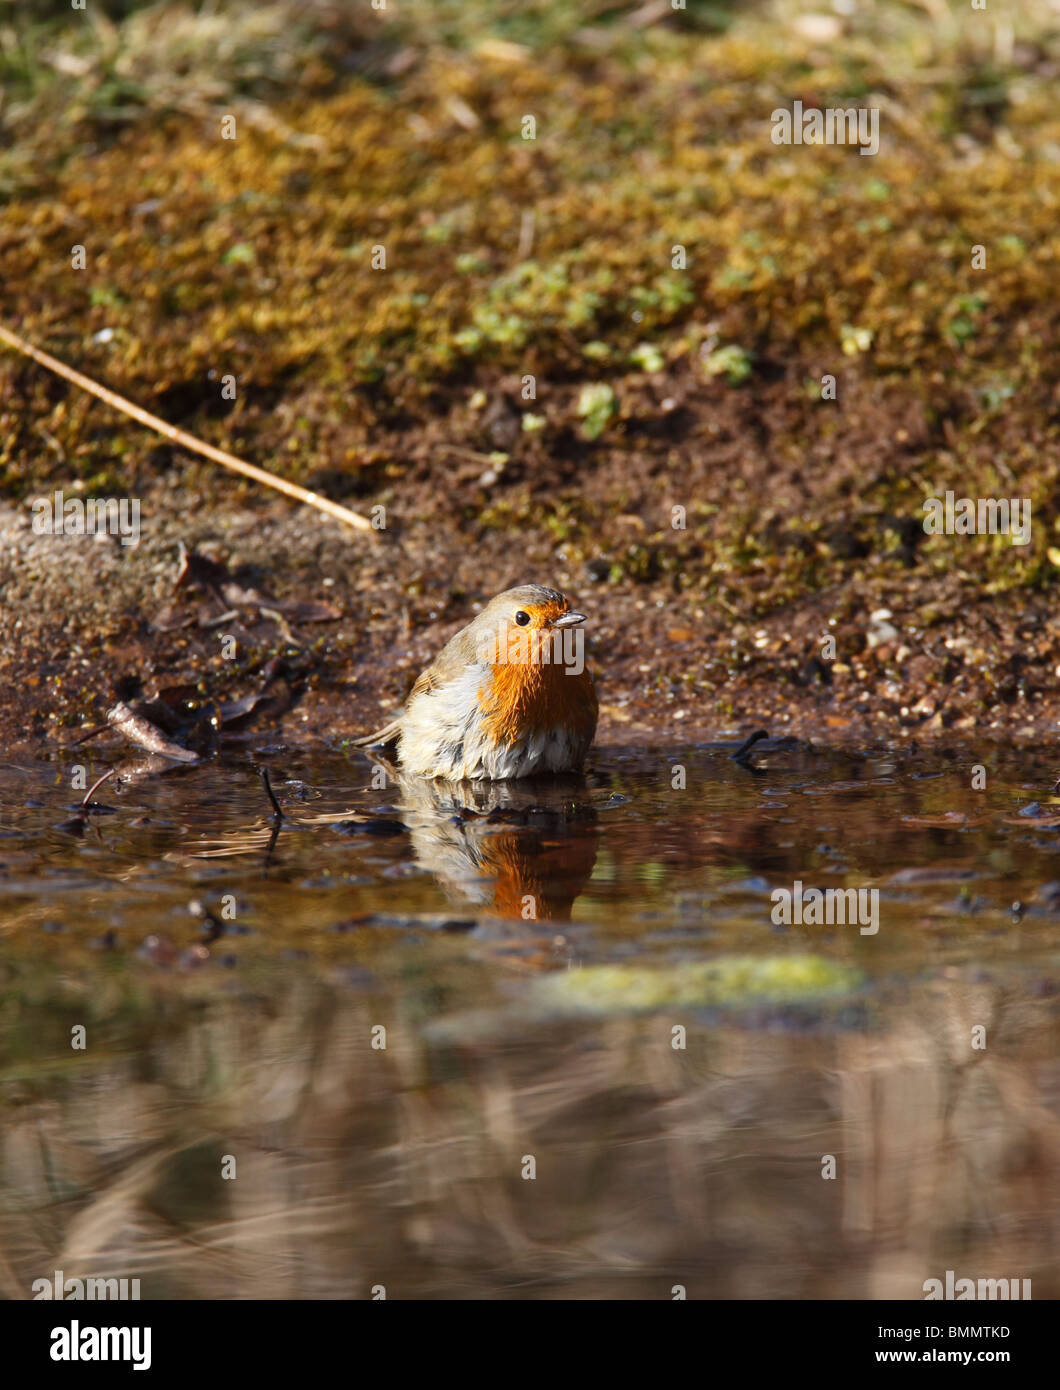 Robin (Erithacus rubecula) bathing in pond - Stock Image